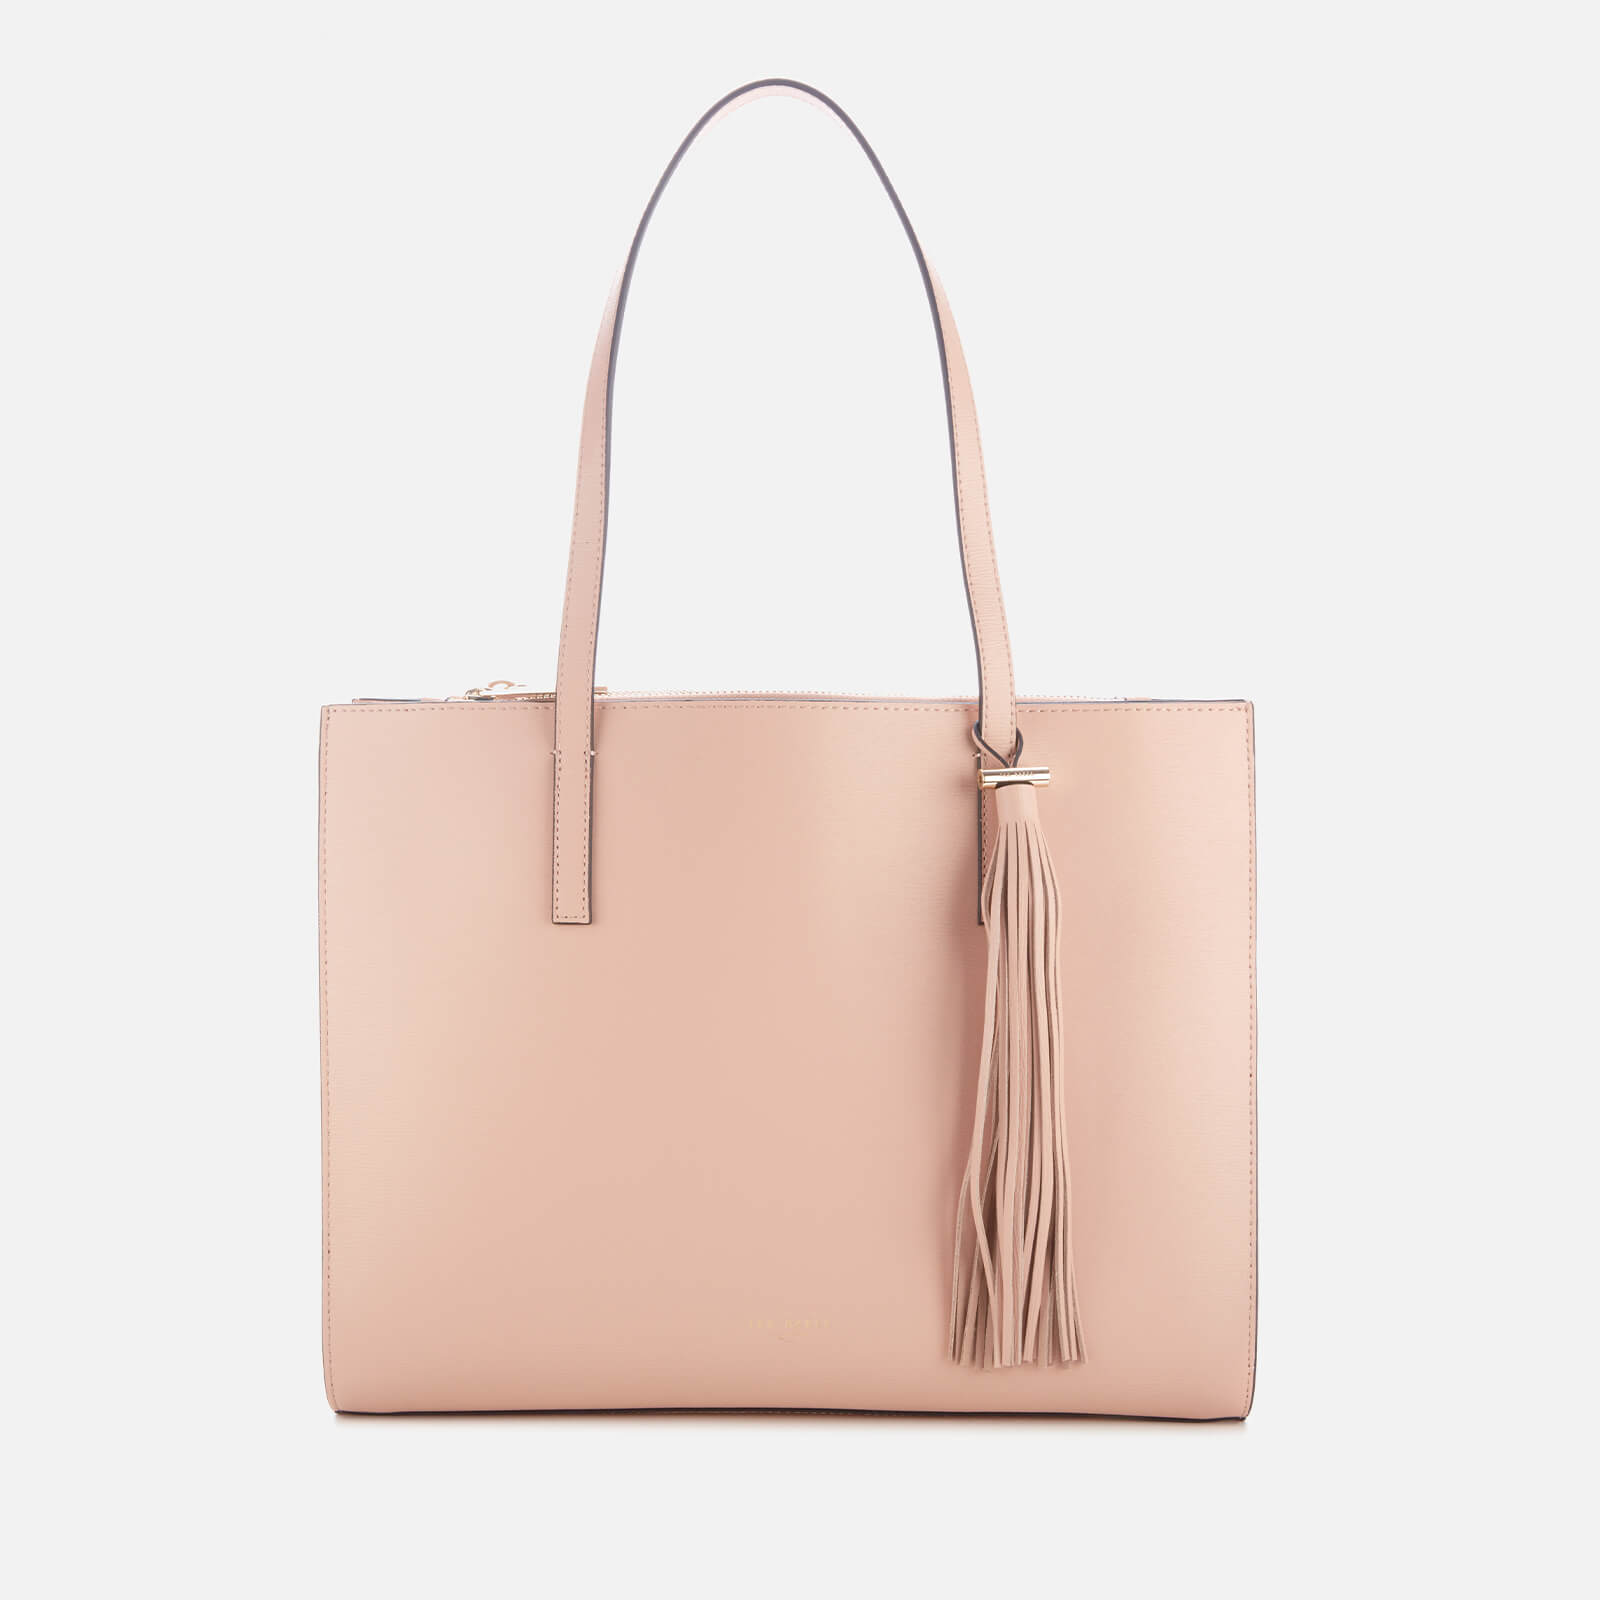 Ted Baker Women's Narissa Leather Tassel Detal Large Tote Bag - Taupe 原價189英鎊 優惠價95